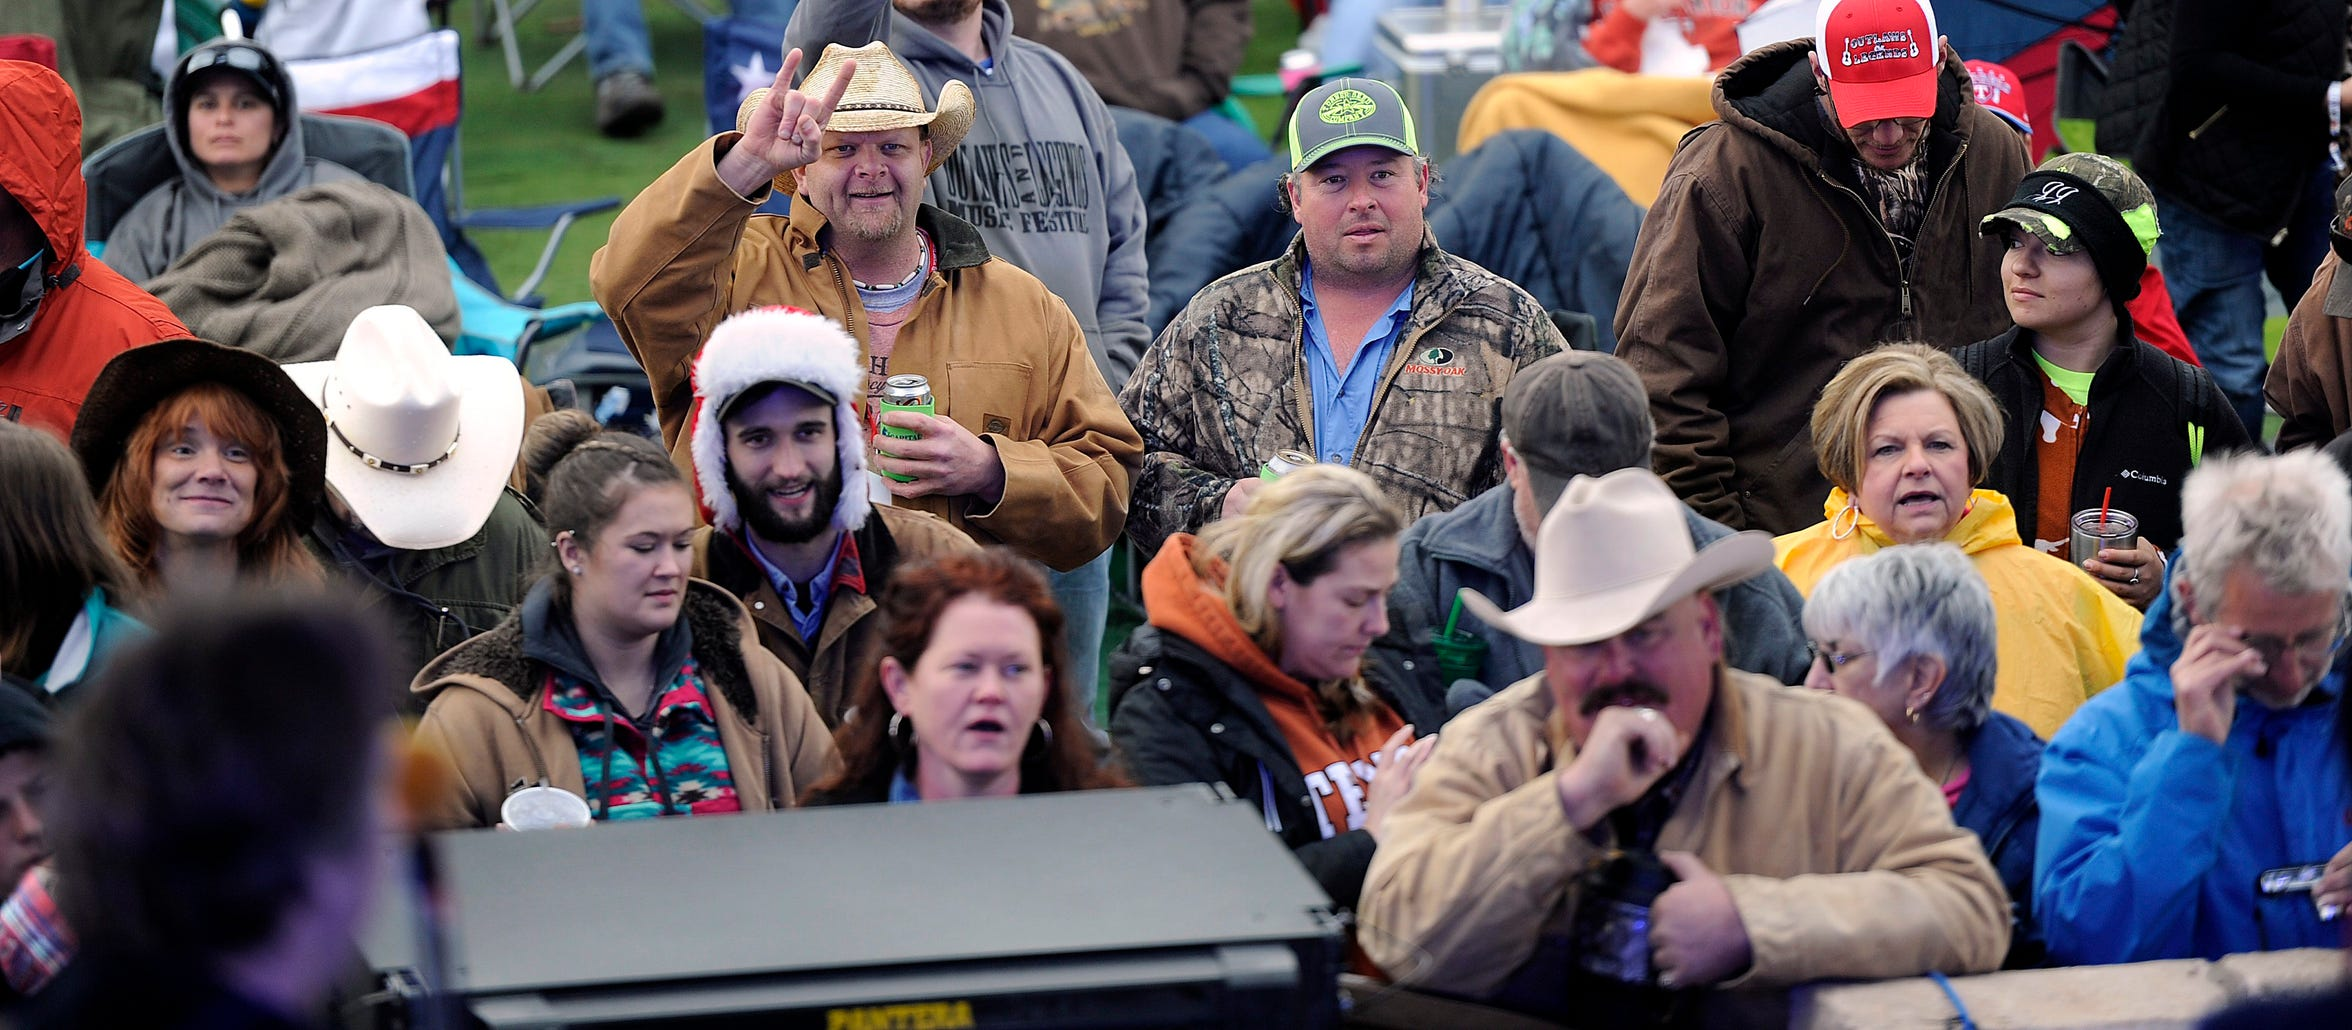 Fans cheer as Dean Dillon & the Texas Jamm Band perform during the 2016 Outlaws & Legends Music Festival in 2016.